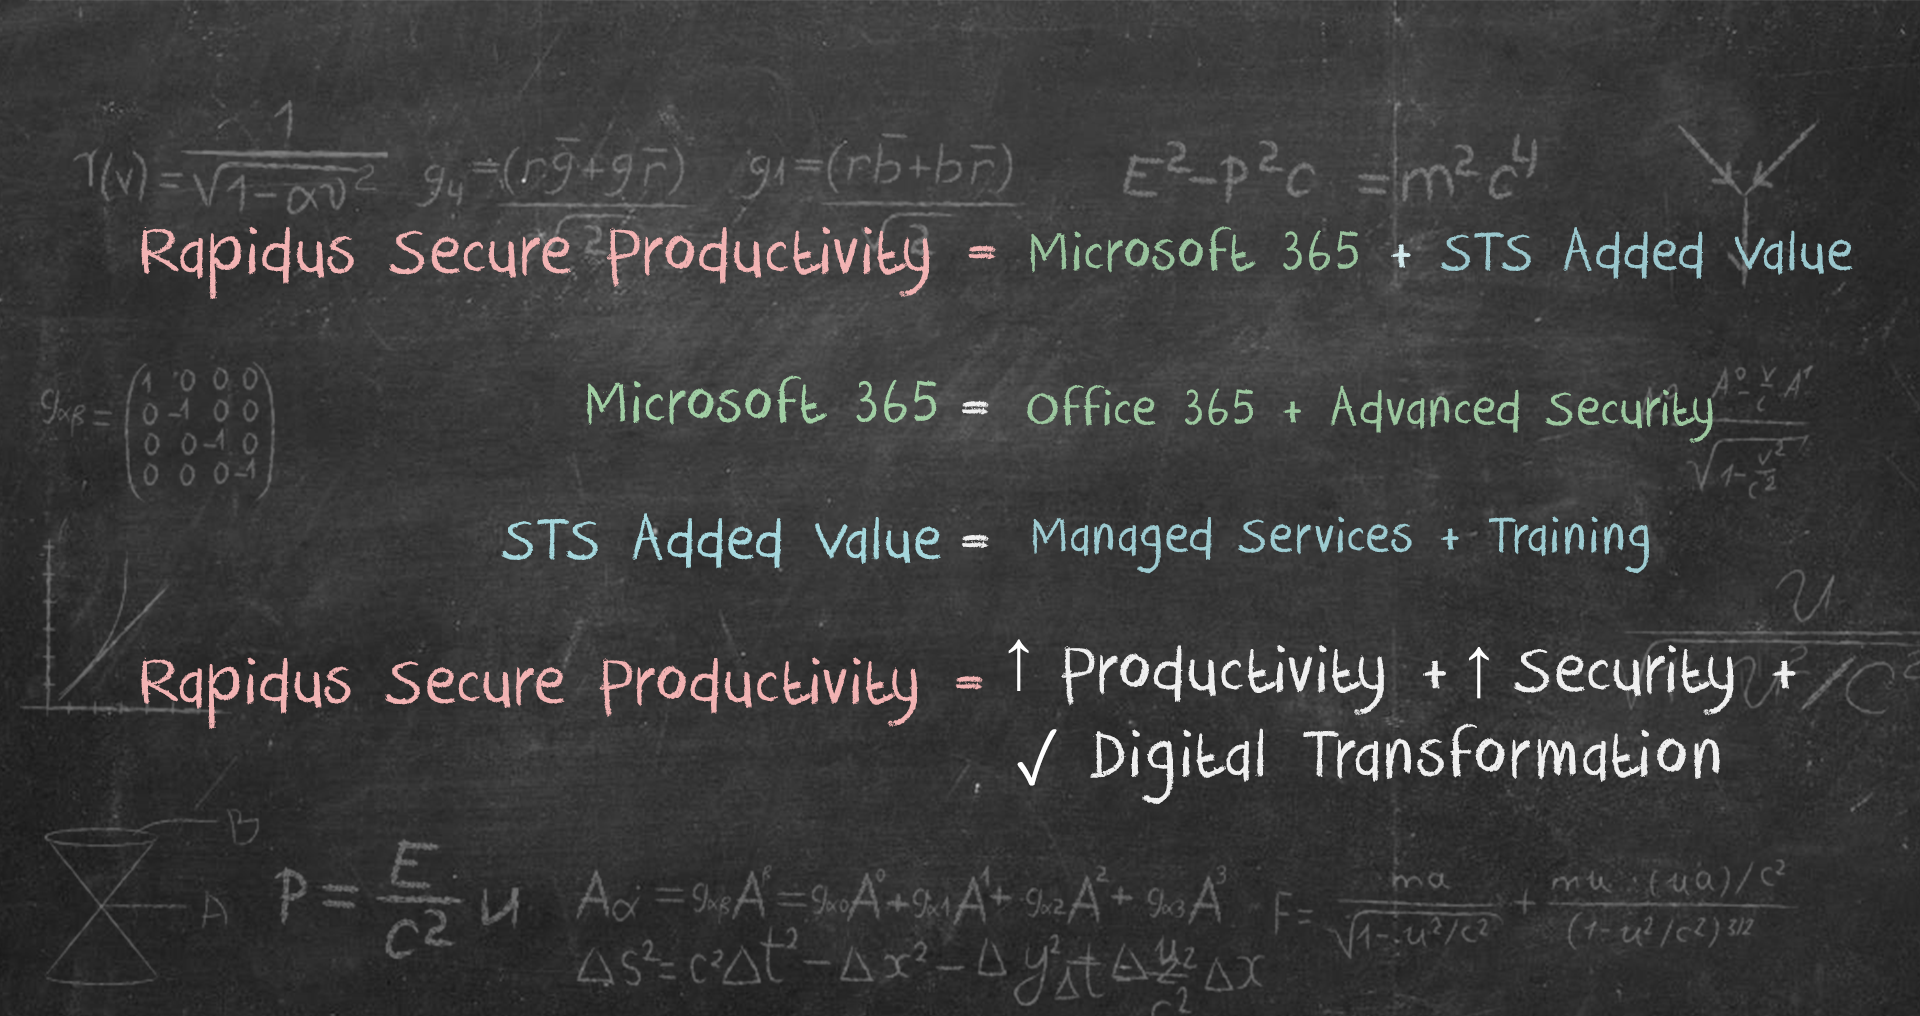 Microsoft 365 By Rapidus Productivity